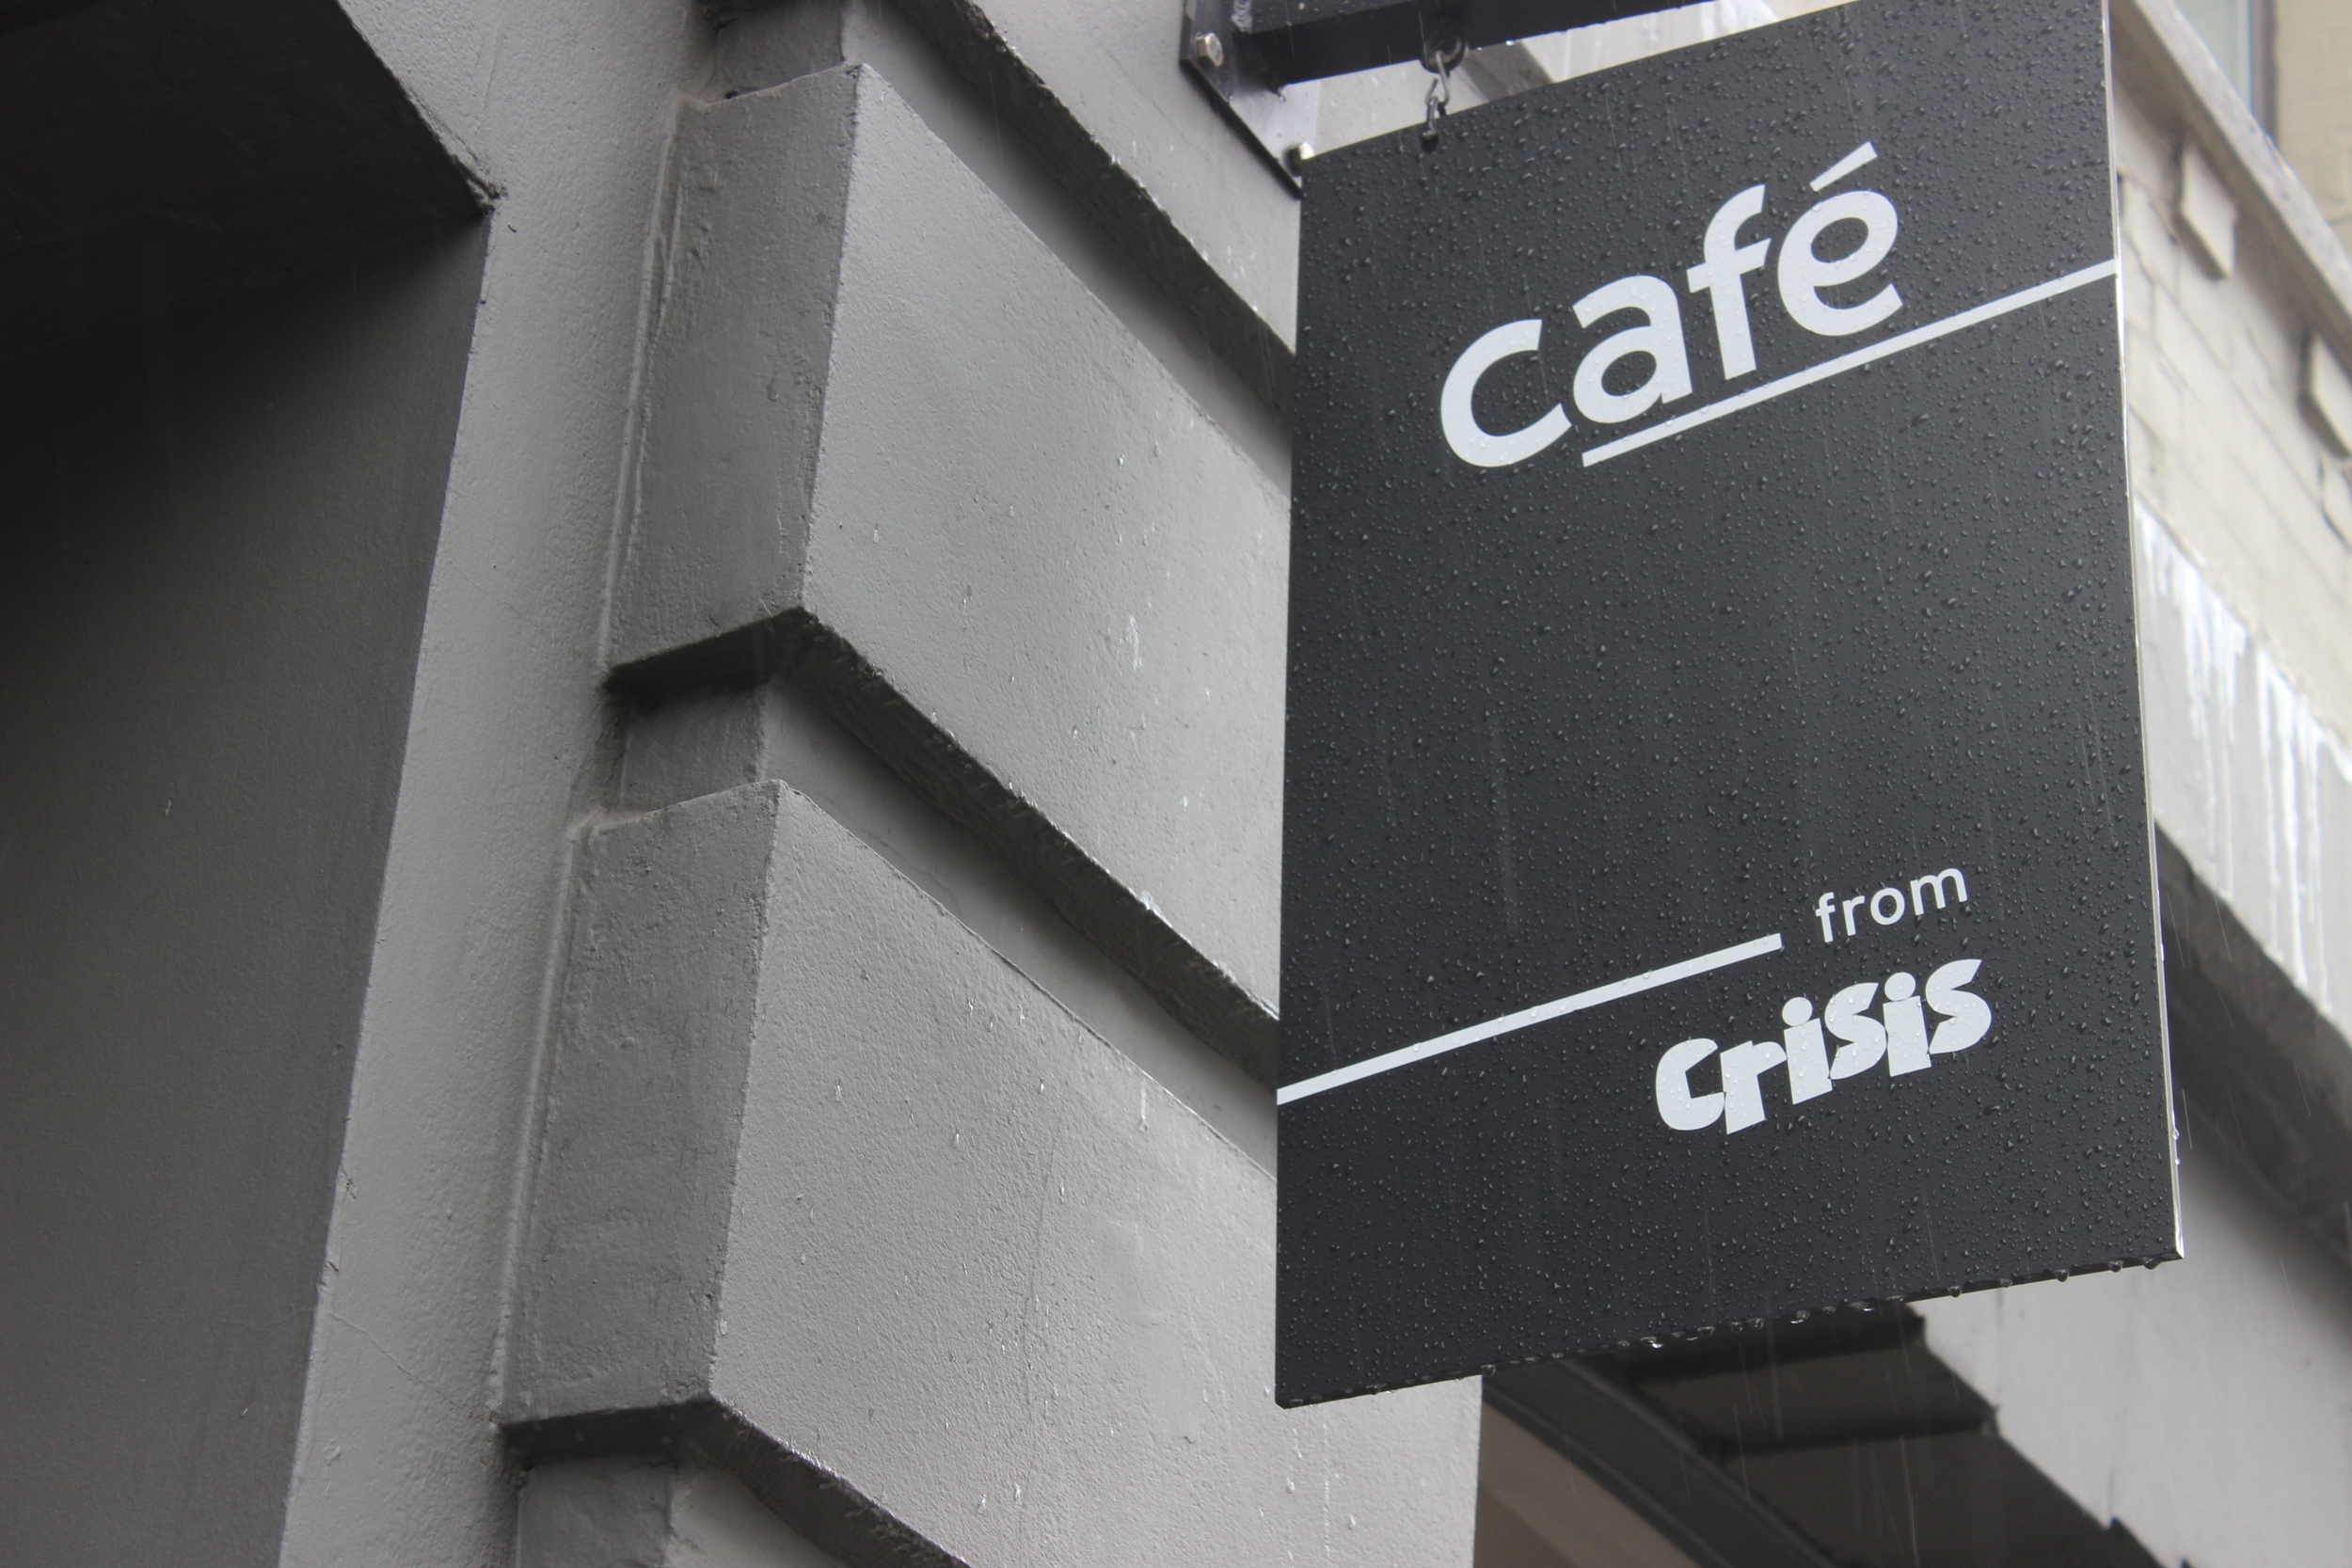 Crisis is a brilliant homelessness charity with a cafe which we supply some cakes too, definitely try them out!